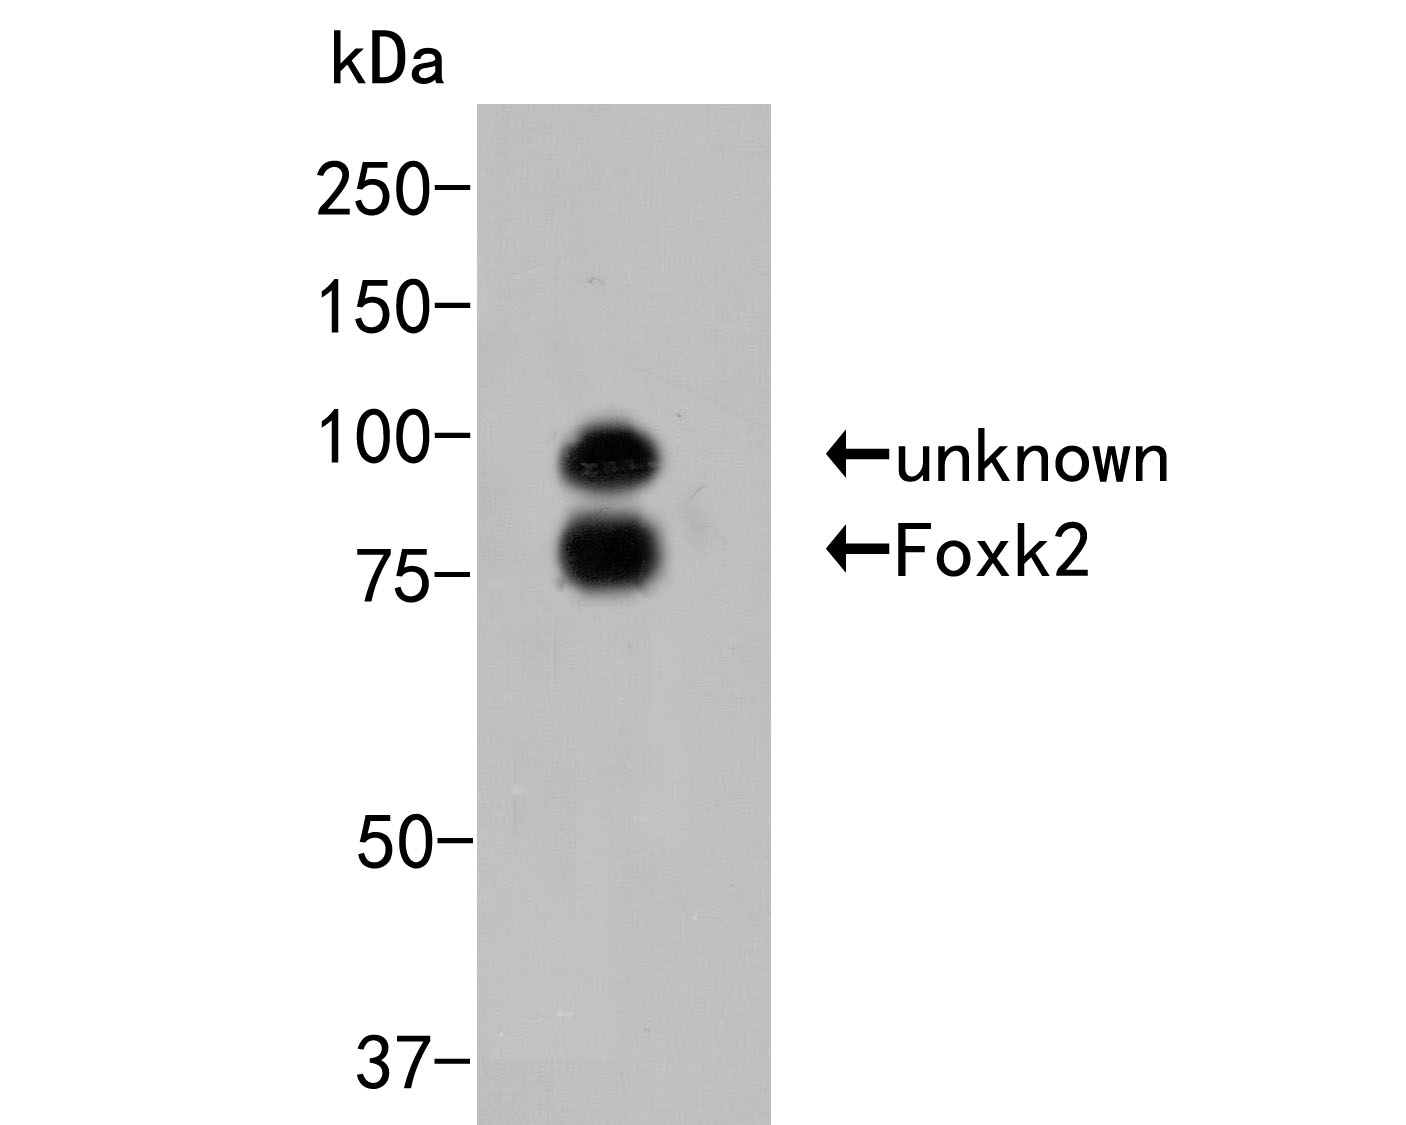 Western blot analysis of Foxk2 on 293 cell lysates. Proteins were transferred to a PVDF membrane and blocked with 5% BSA in PBS for 1 hour at room temperature. The primary antibody (ER2001-47, 1/500) was used in 5% BSA at room temperature for 2 hours. Goat Anti-Rabbit IgG - HRP Secondary Antibody (HA1001) at 1:5,000 dilution was used for 1 hour at room temperature.